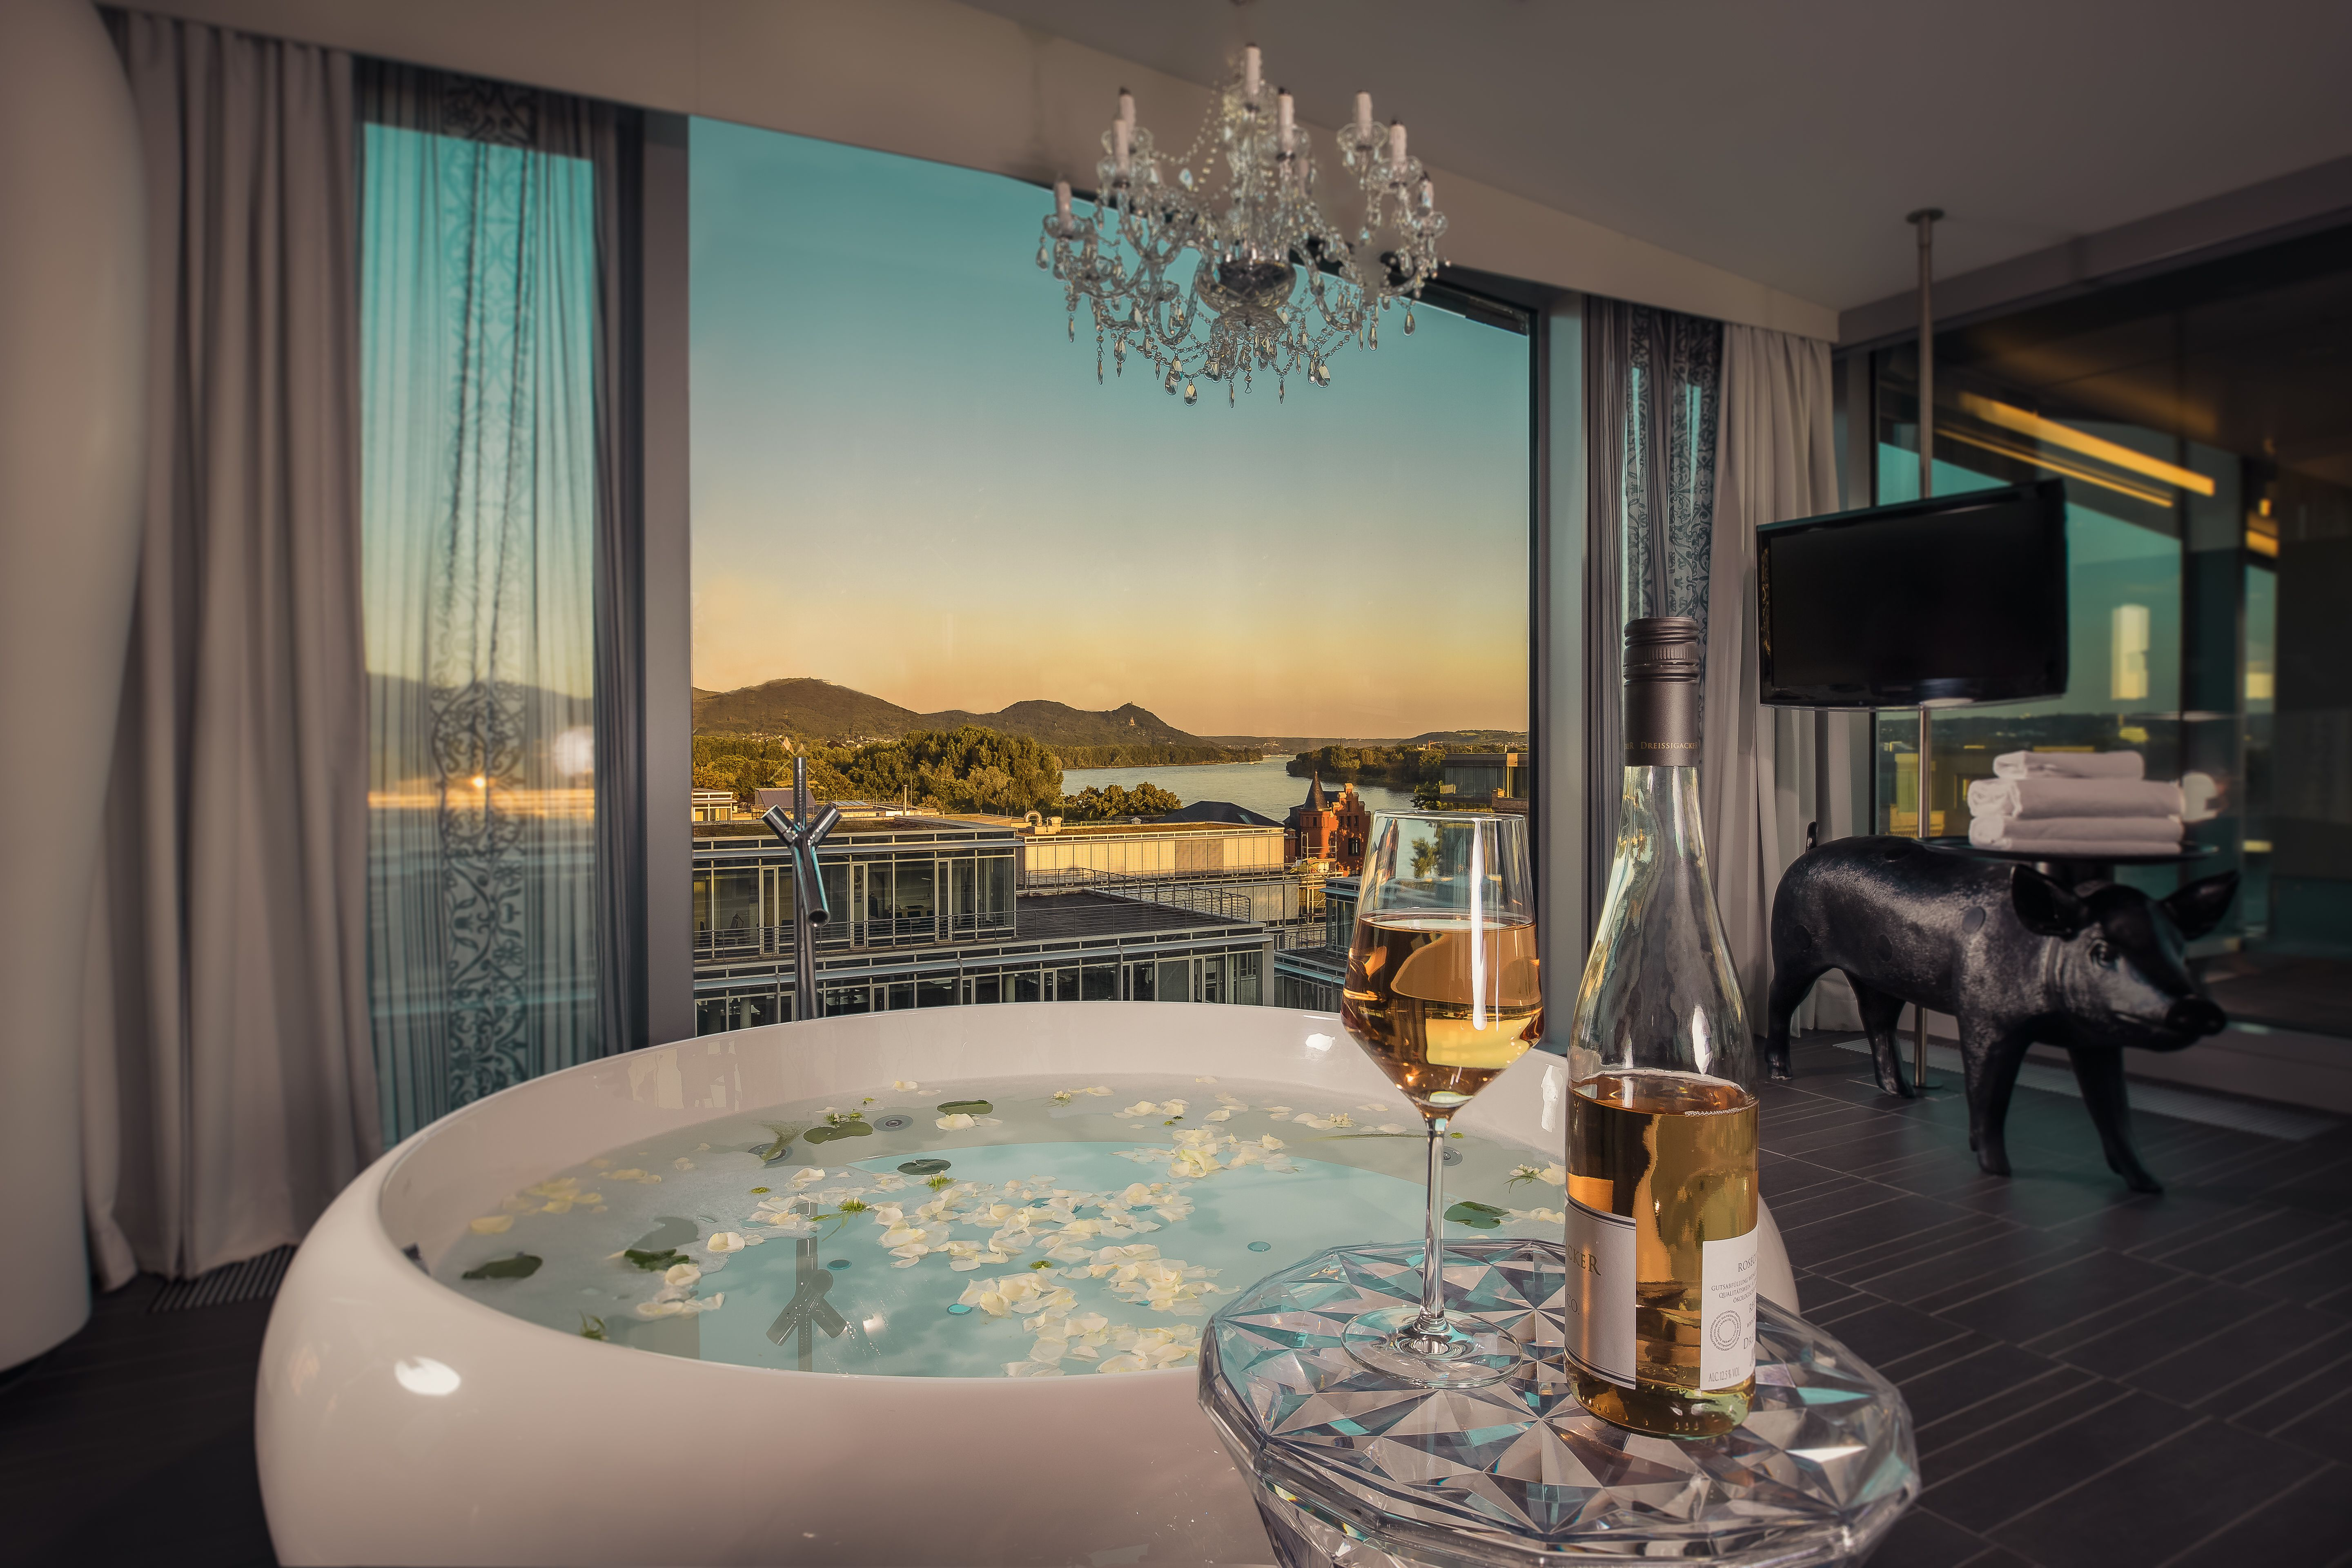 Bathtub With A View At The Kameha Grand Hotel In Bonn Germany Hotel Mit Whirlpool Minibar Jacuzzi